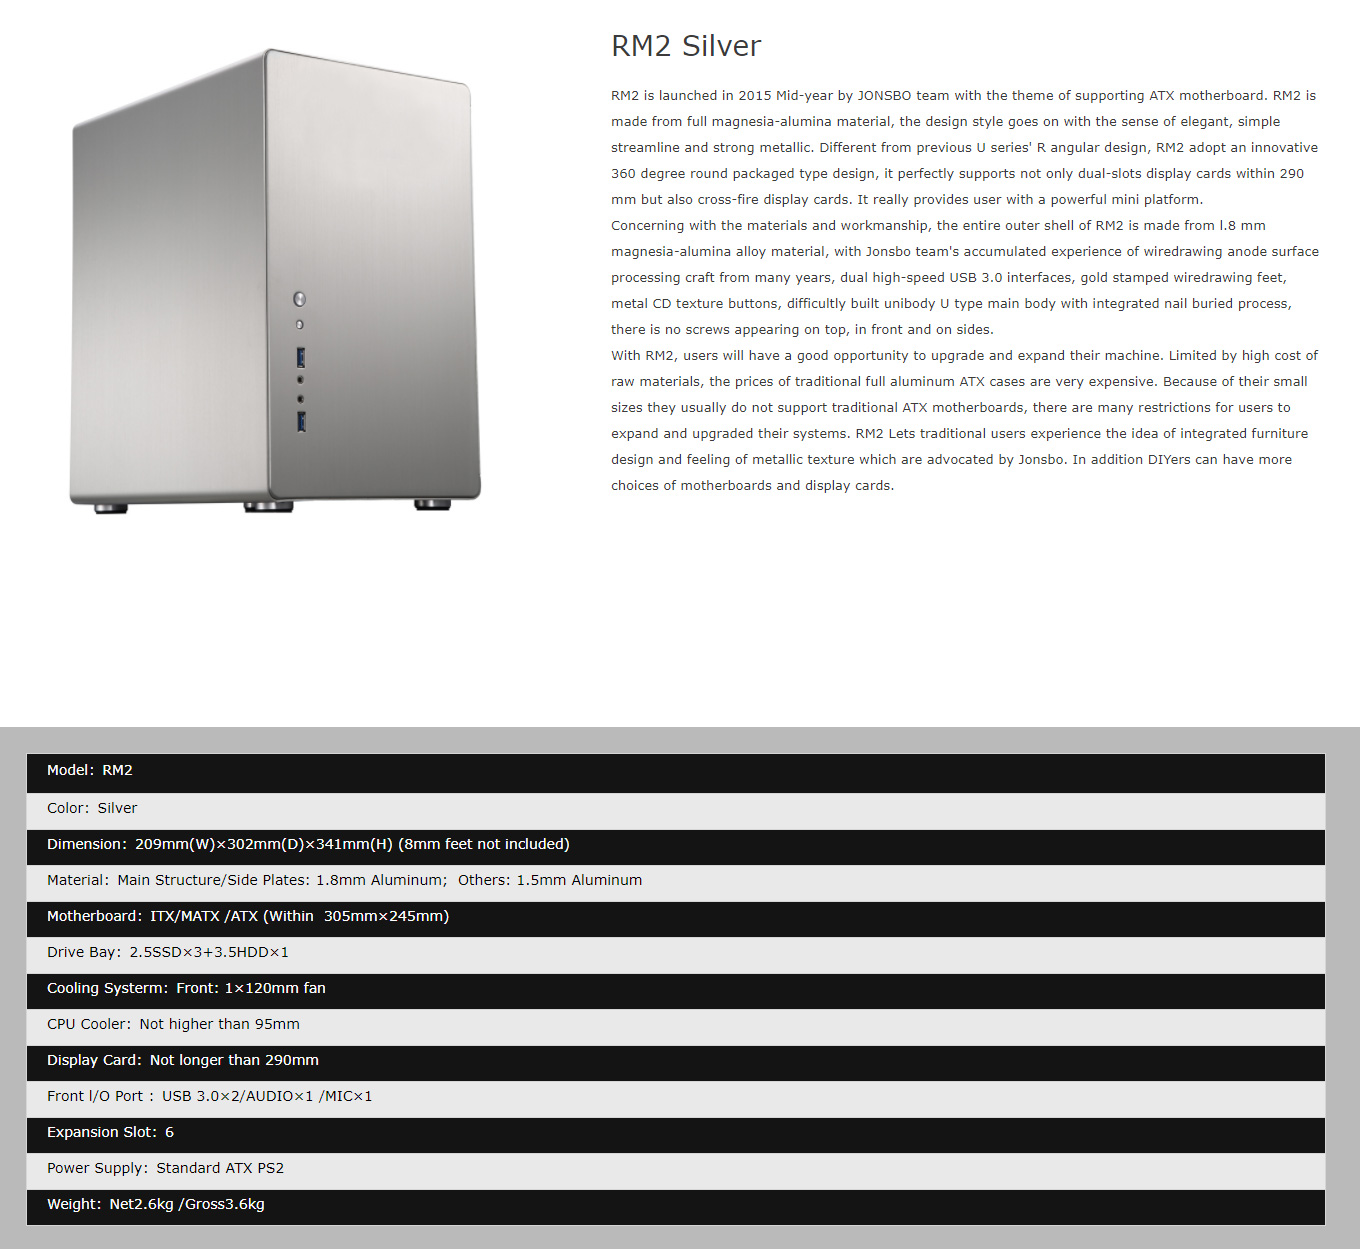 A large marketing image providing additional information about the product Jonsbo RM2 Silver ATX Case - Additional alt info not provided